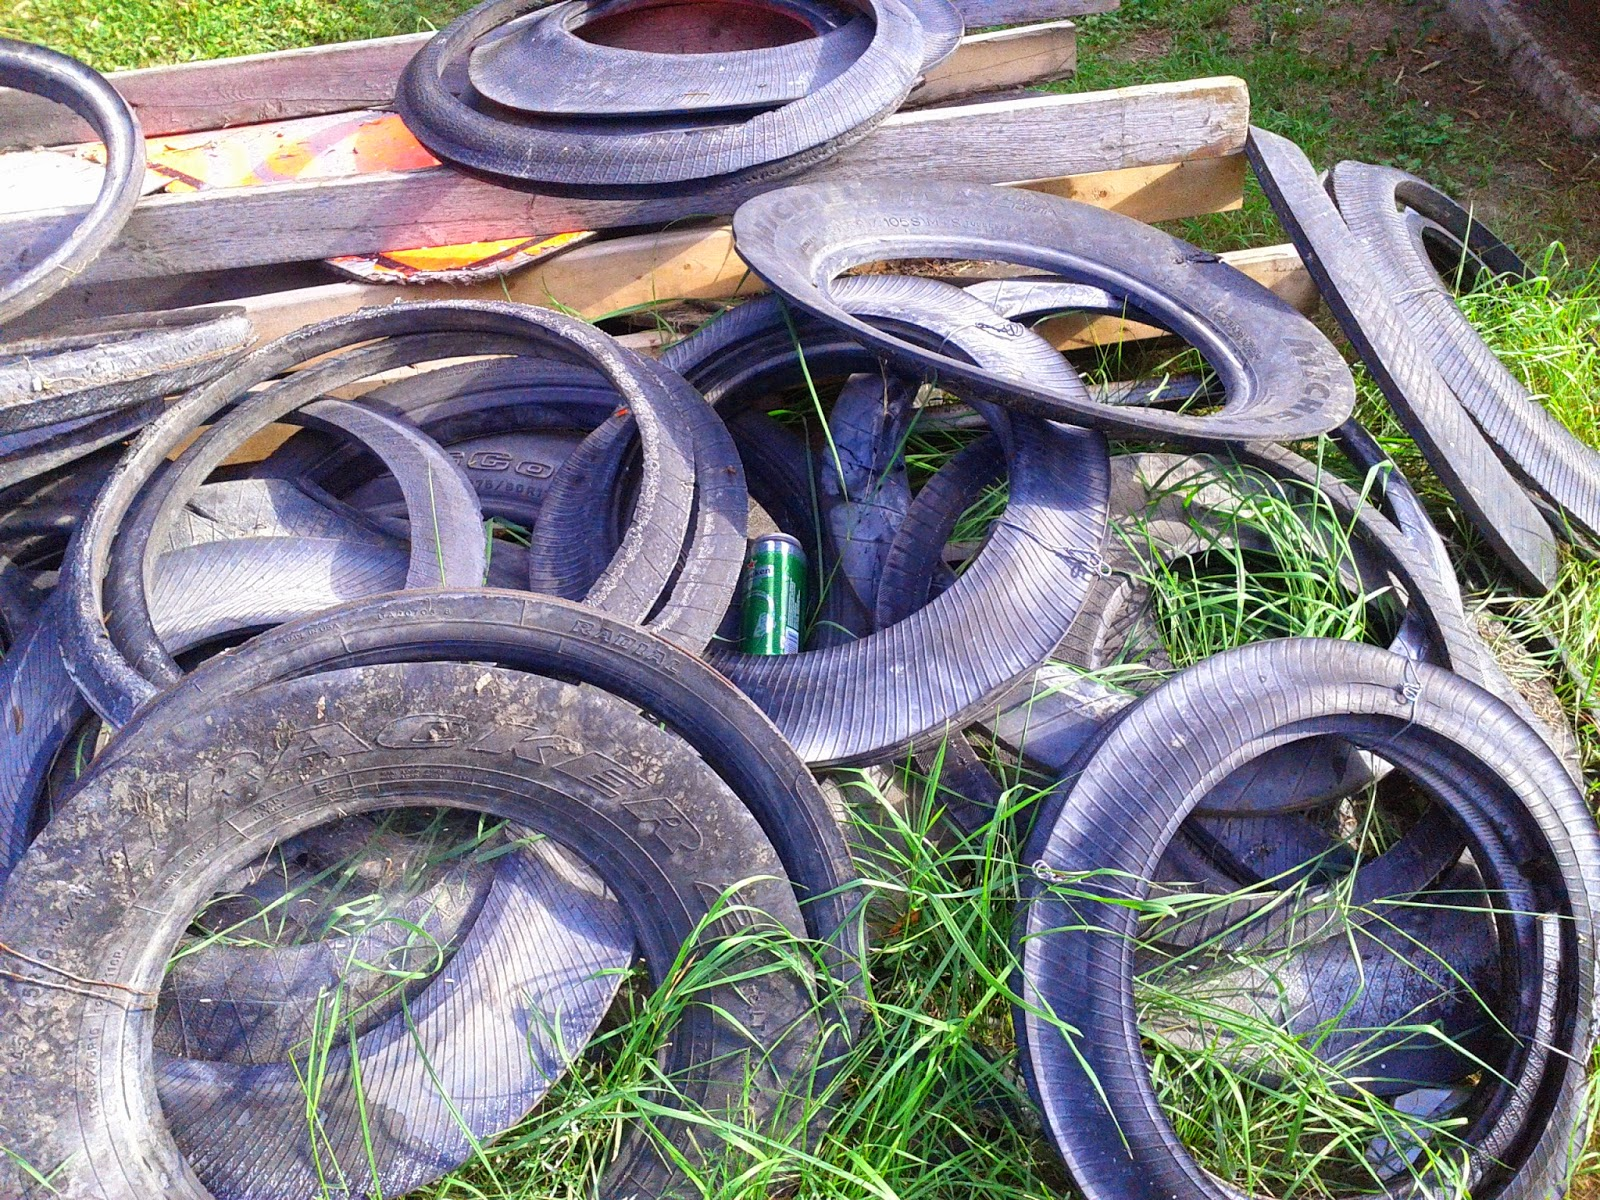 Stock photo: Tires worn down and trashed